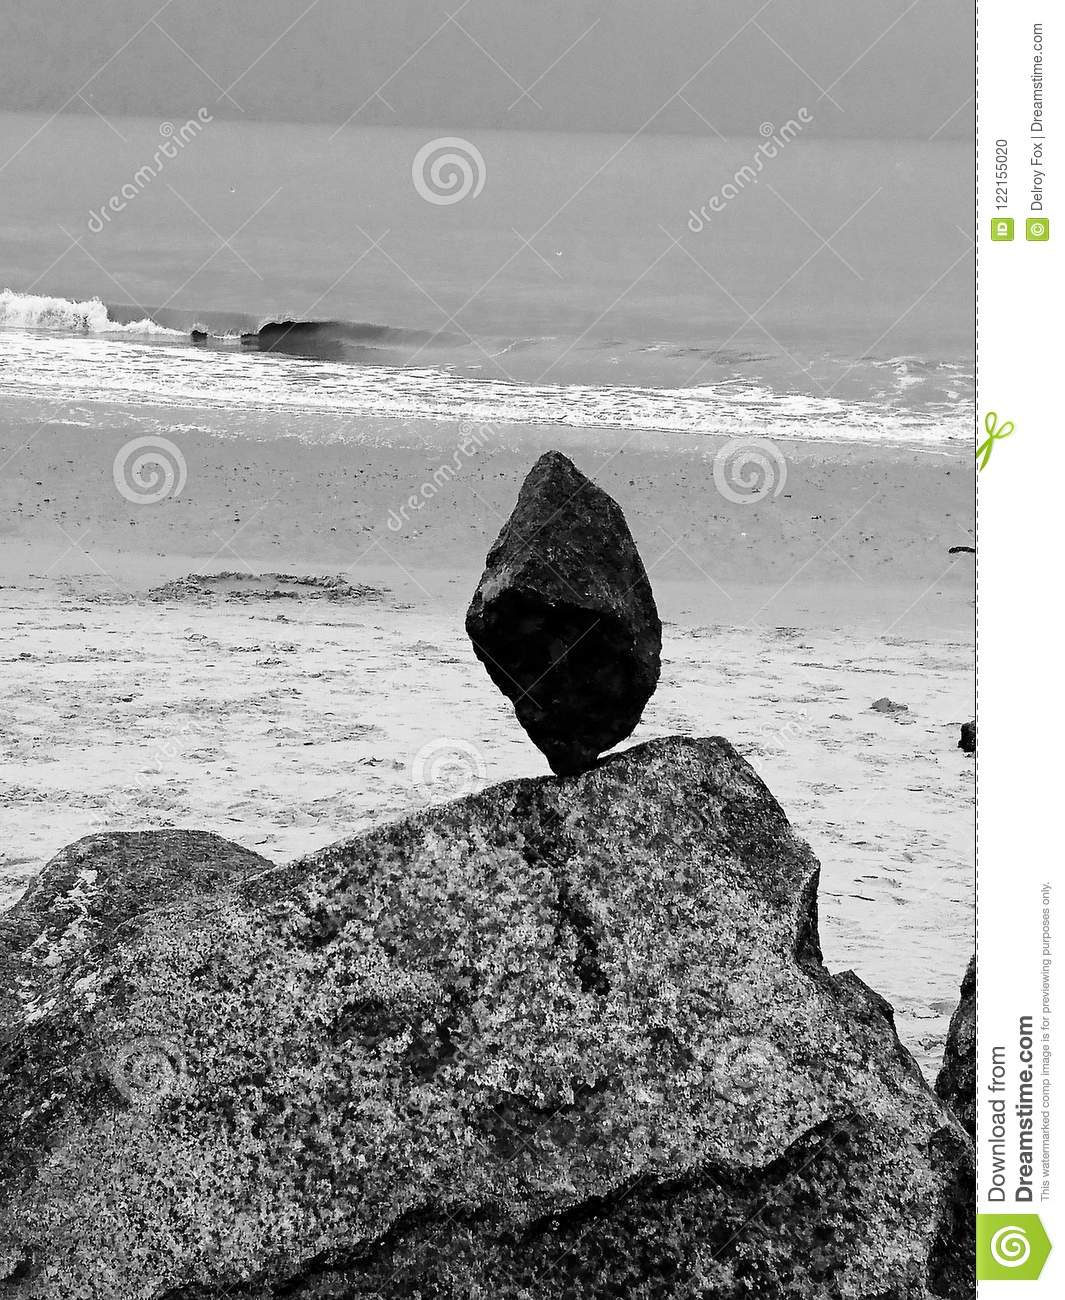 My hobby stone rock balancing playing with nature at hopton beach norfolk uk black and white